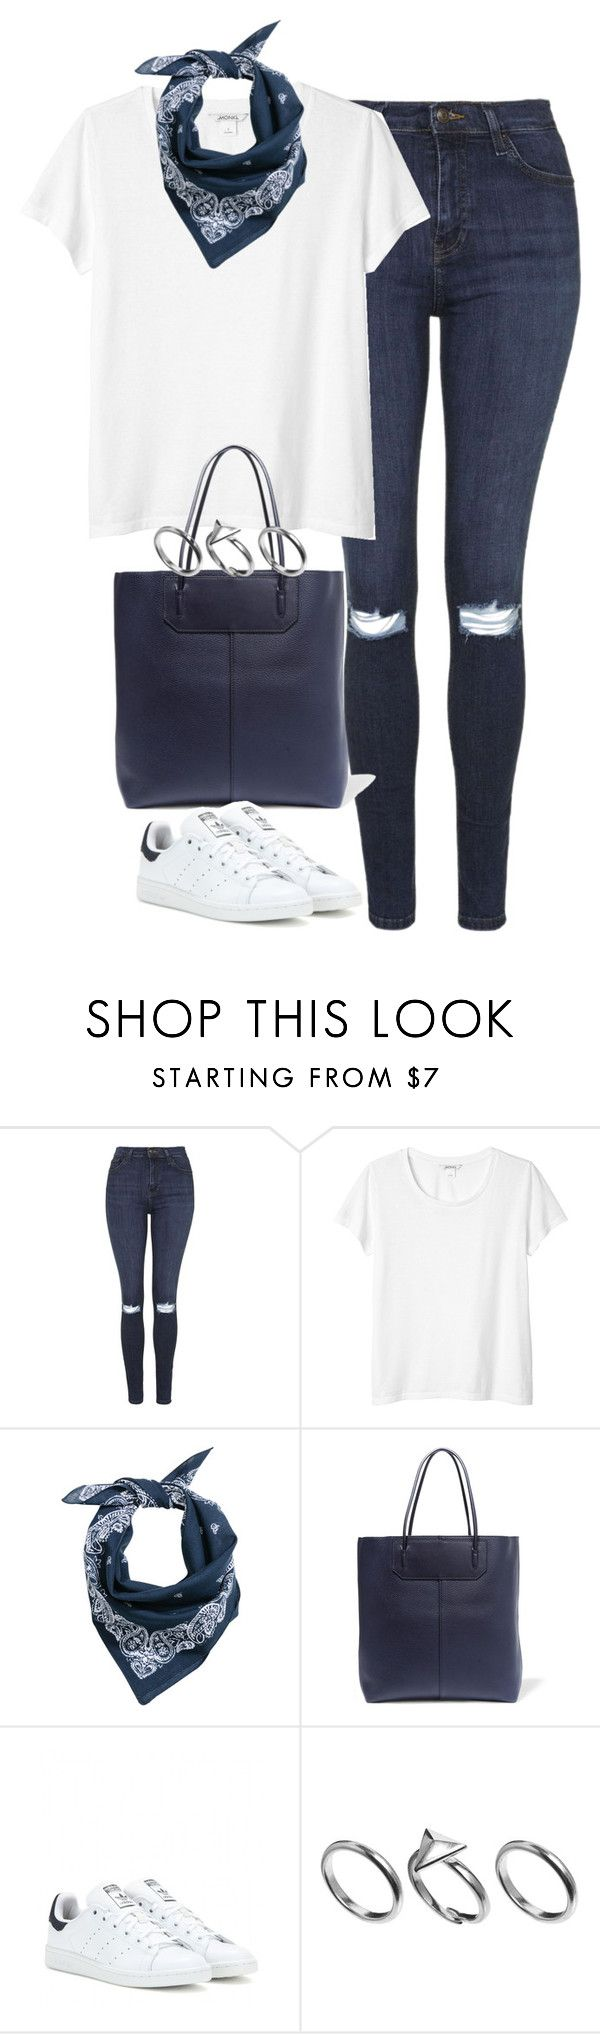 """Untitled #3887"" by keliseblog ❤ liked on Polyvore featuring Topshop, Monki, H&M, Alexander Wang, adidas and Pilgrim"